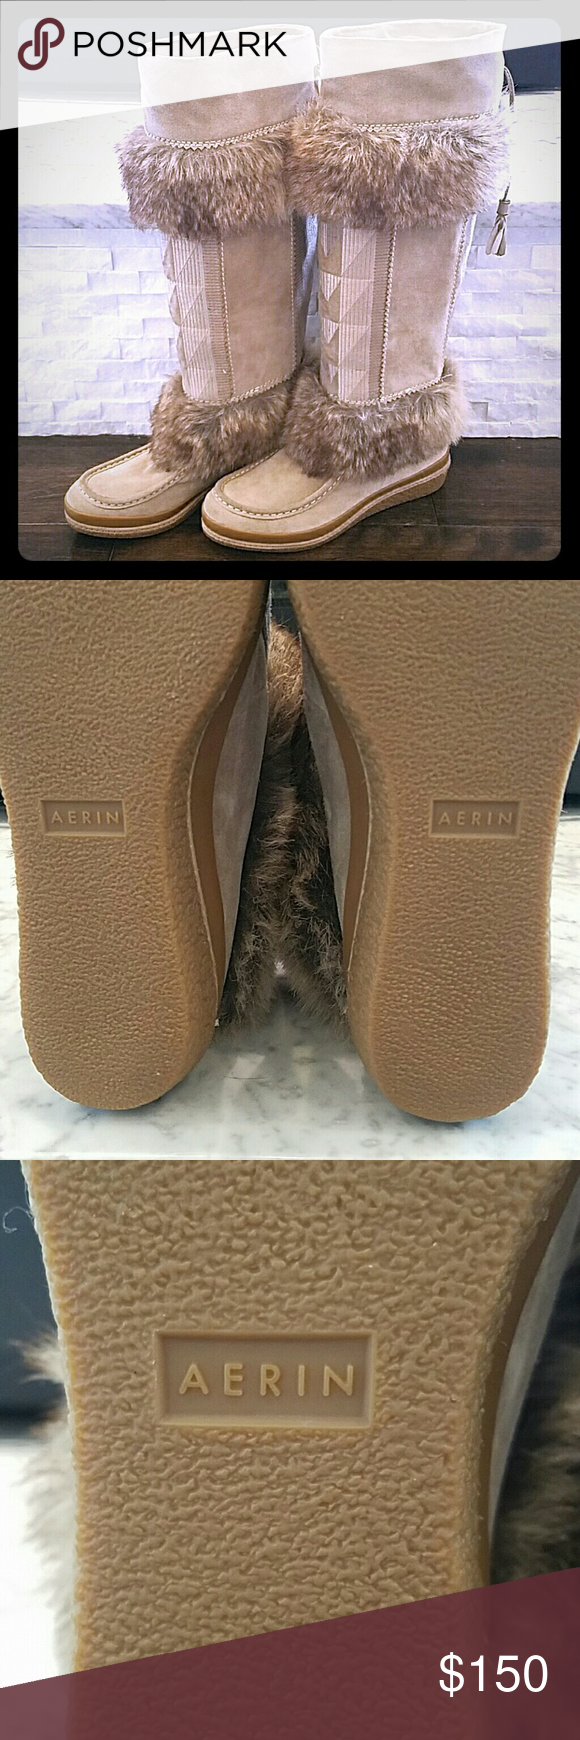 A PERFECT PAIR OF AERIN WINTER BOOTS A perfect pair of beautiful faux fur AERIN winter boots. These are brand new never been worn see all of the attached pics. Need to go to a good home and be worn. These are beautiful and are size 6.5 and are TTS. AERIN  Shoes Winter & Rain Boots